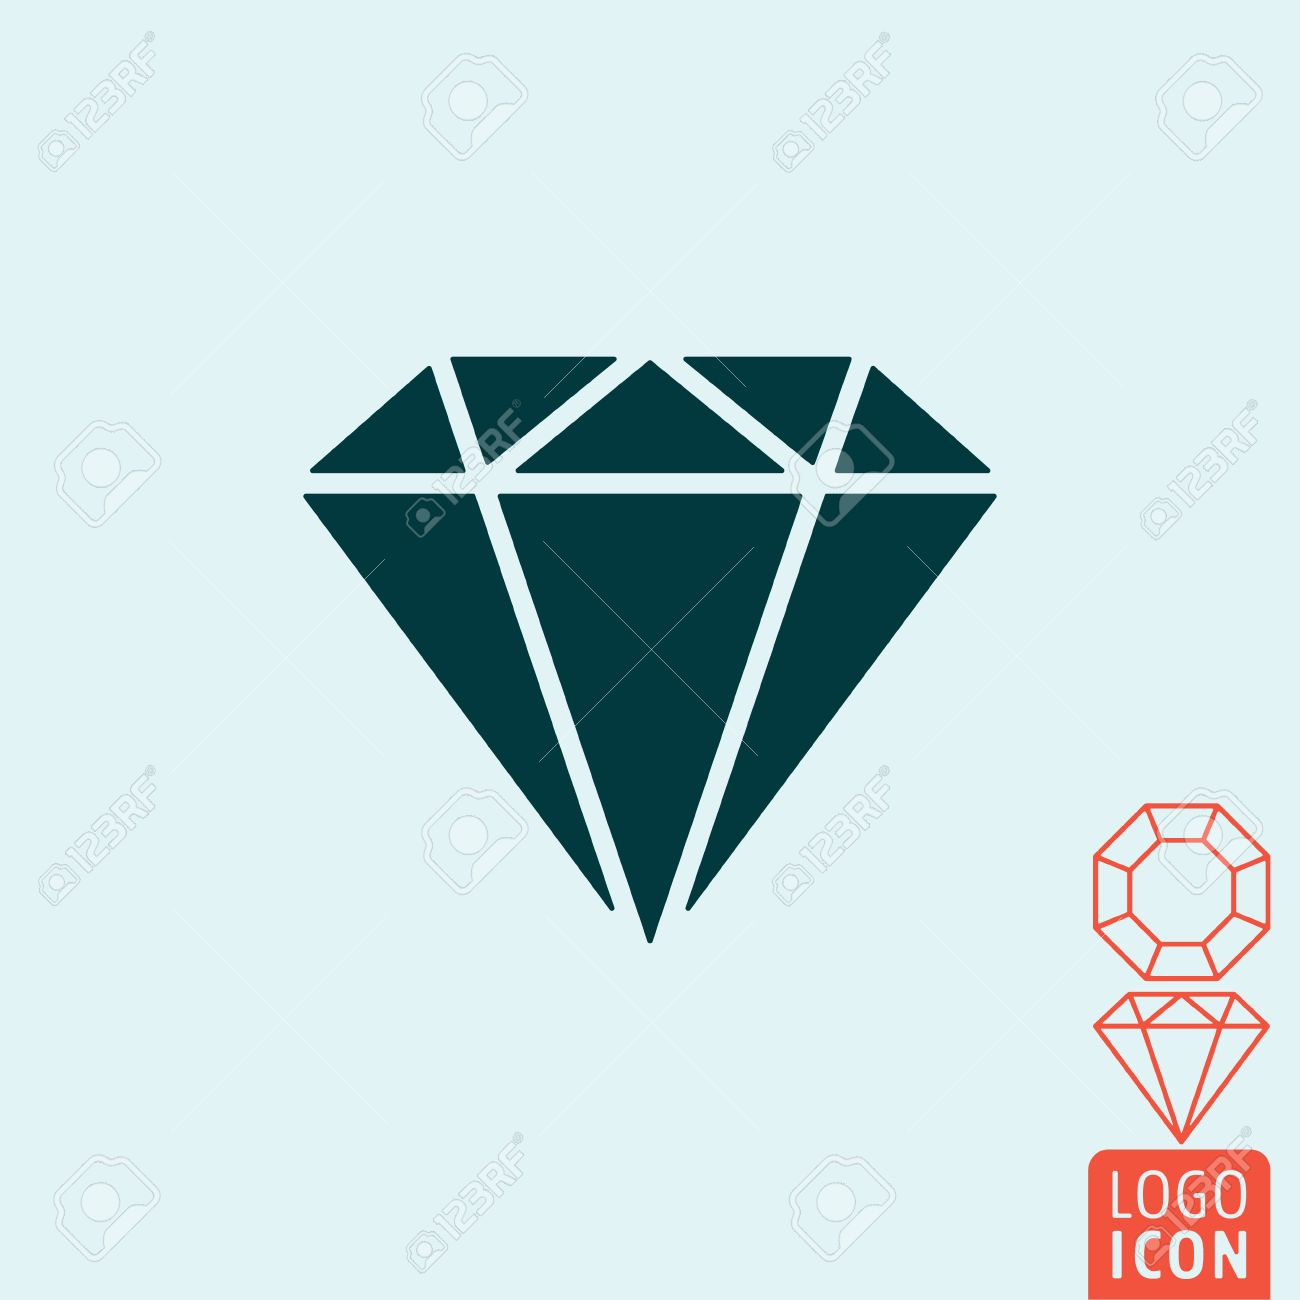 depositphotos diamond stock by illustration logo stylized icon vector linaflerova